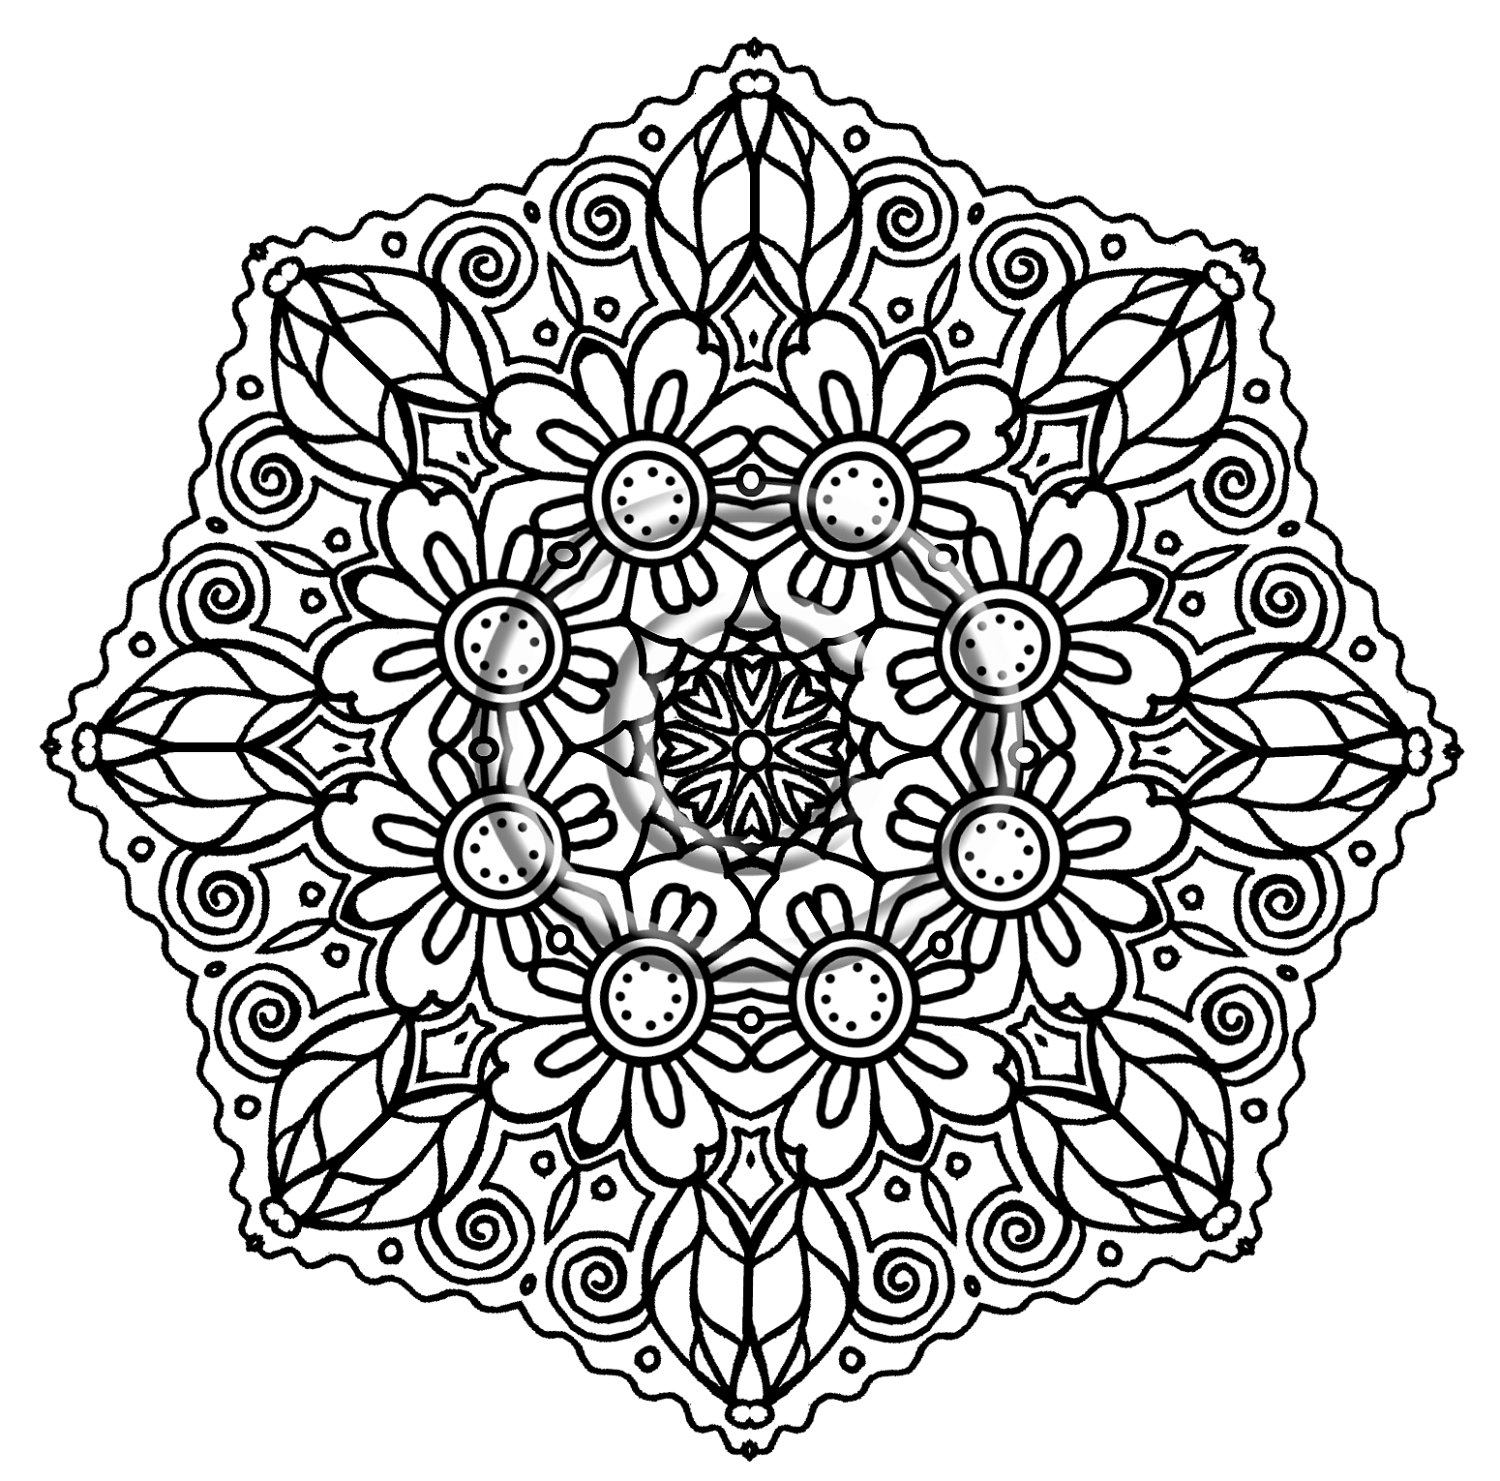 detailed flower coloring pages detailed flower coloring pages to download and print for free detailed coloring flower pages 1 1